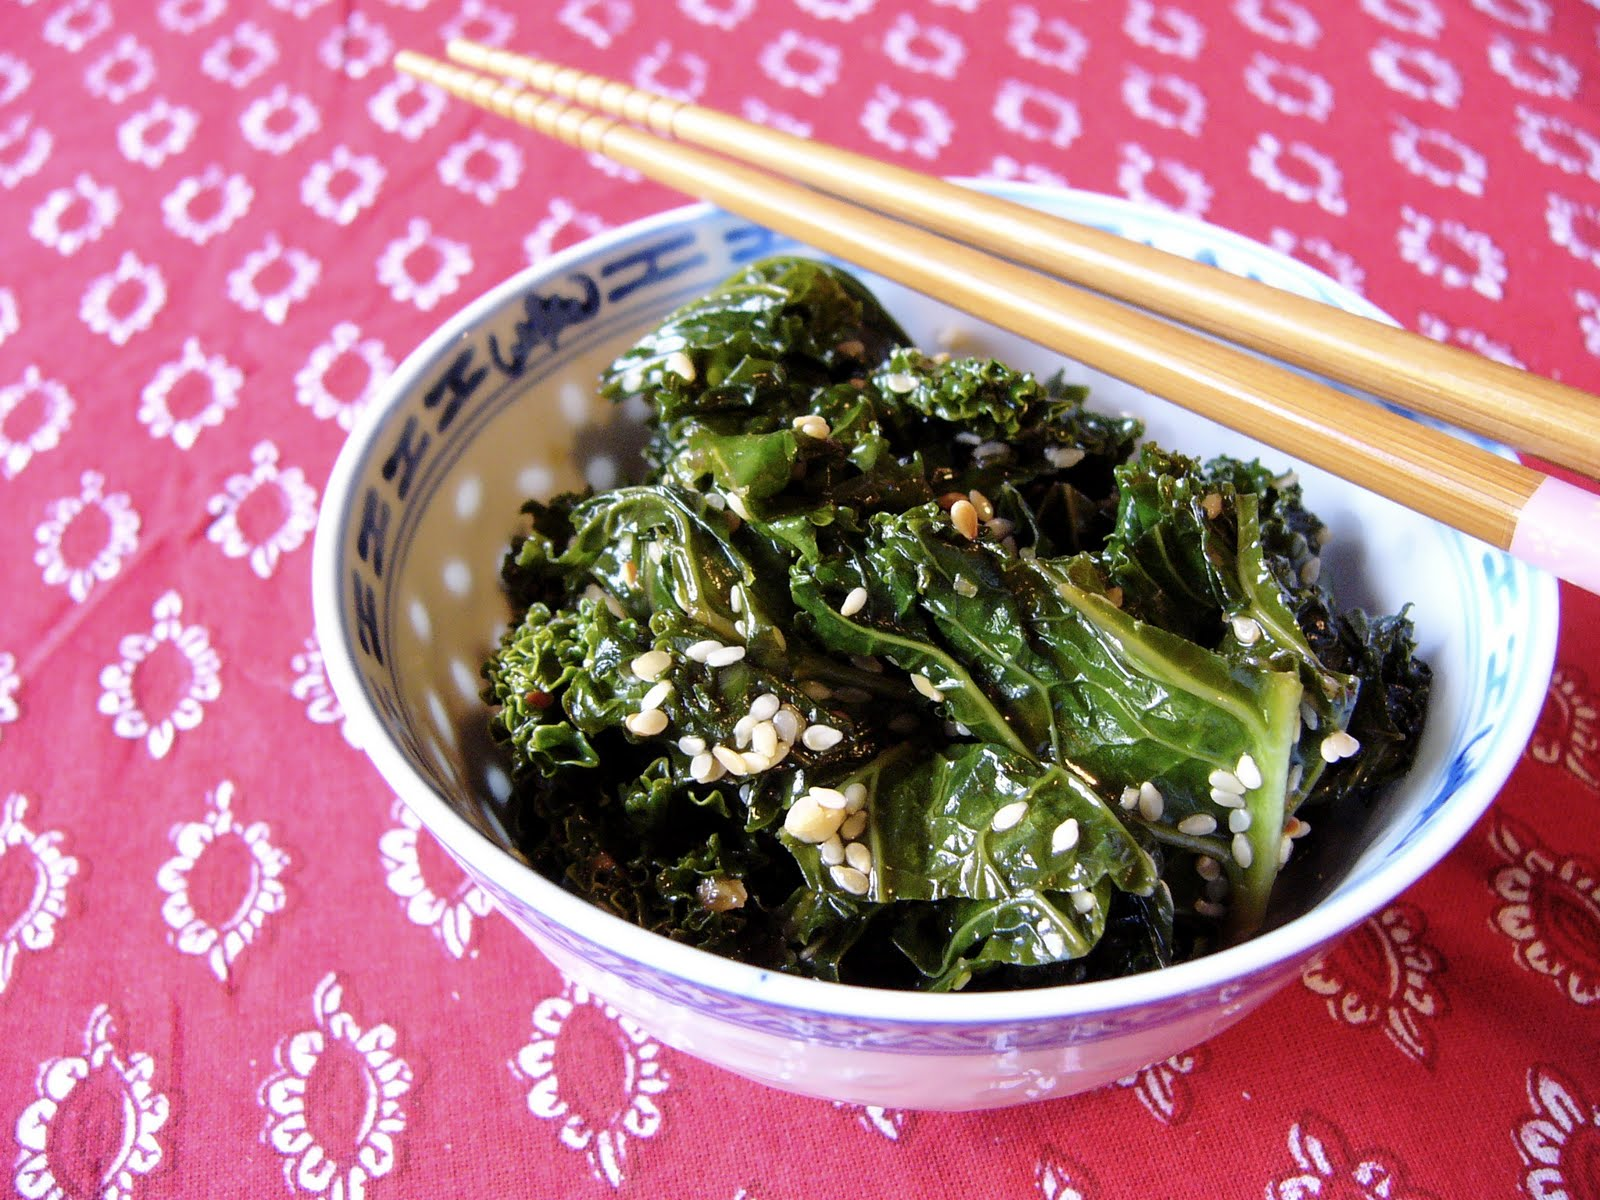 ... More Wooden Spoons: Please welcome to the stage: Sesame Kale Salad